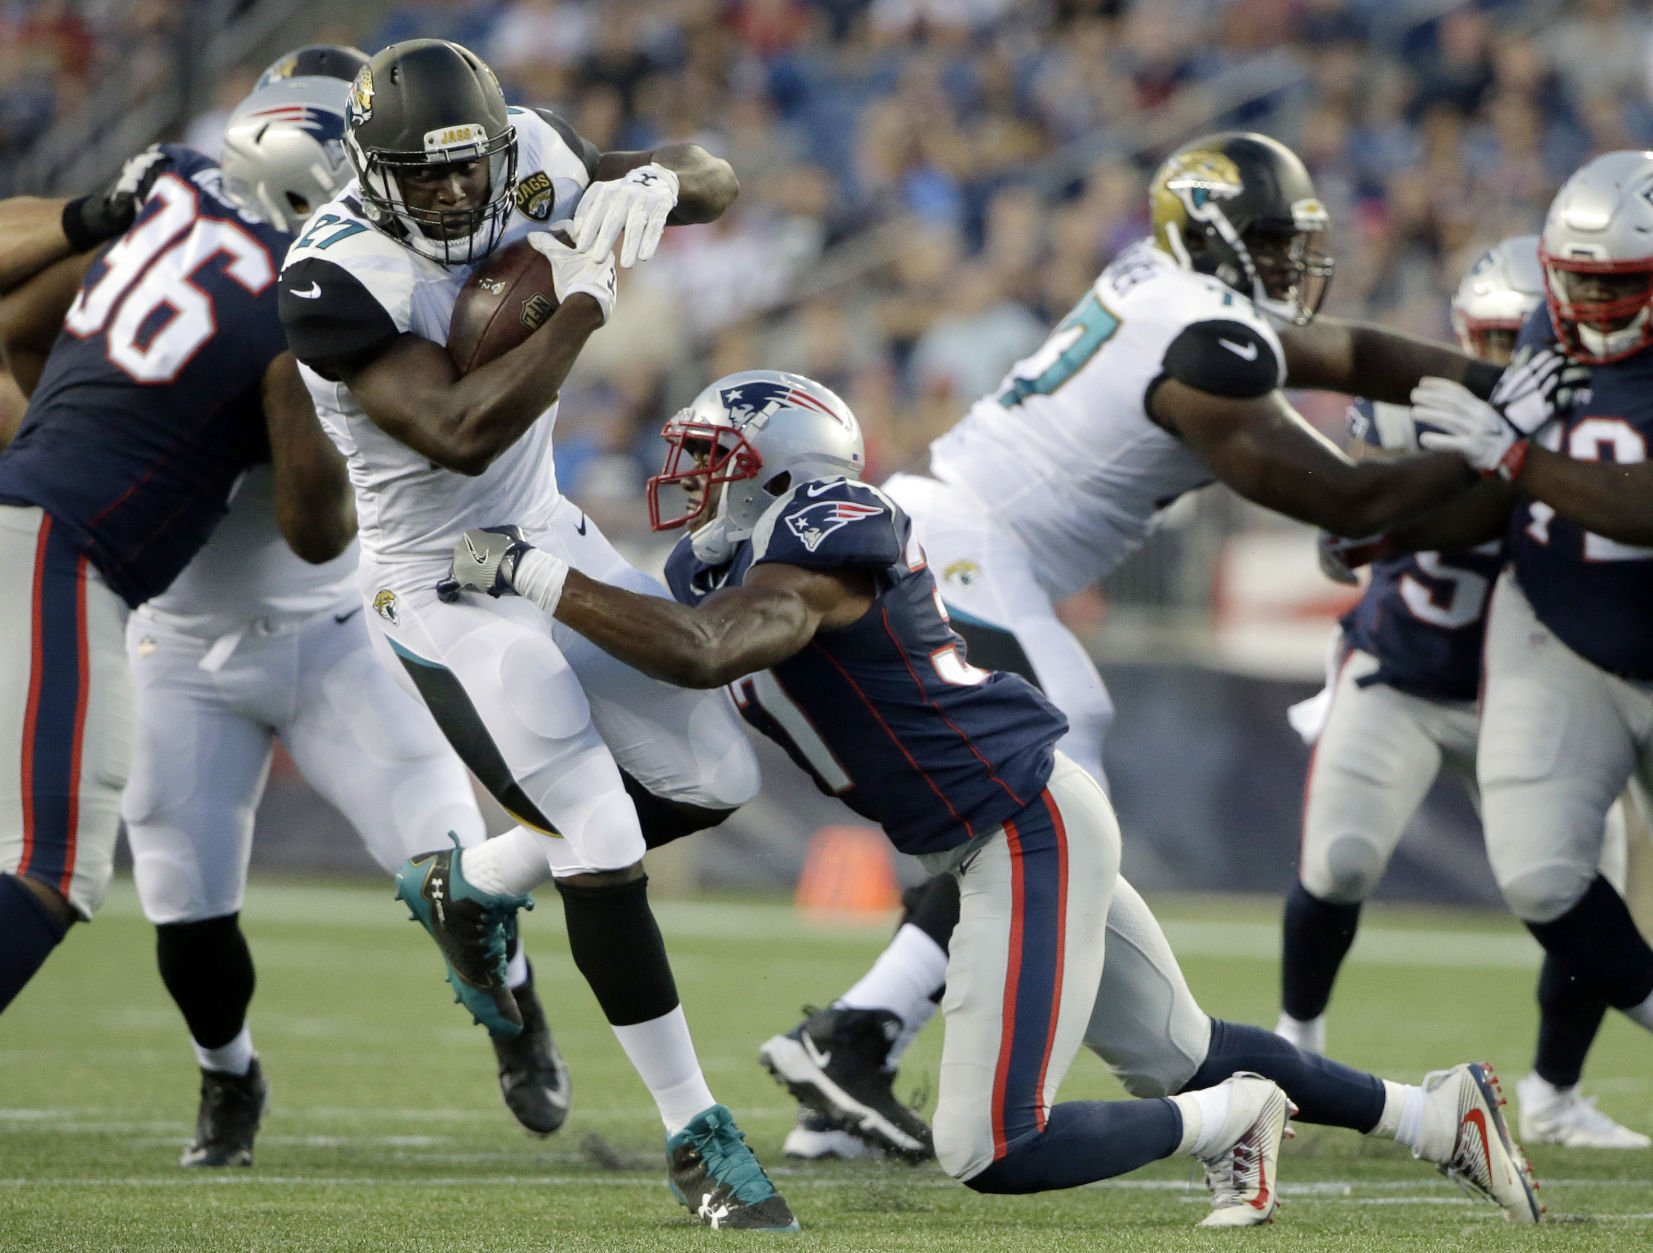 Wide receiver Brandin Cooks dominates Patriots scrimmage with Jaguars